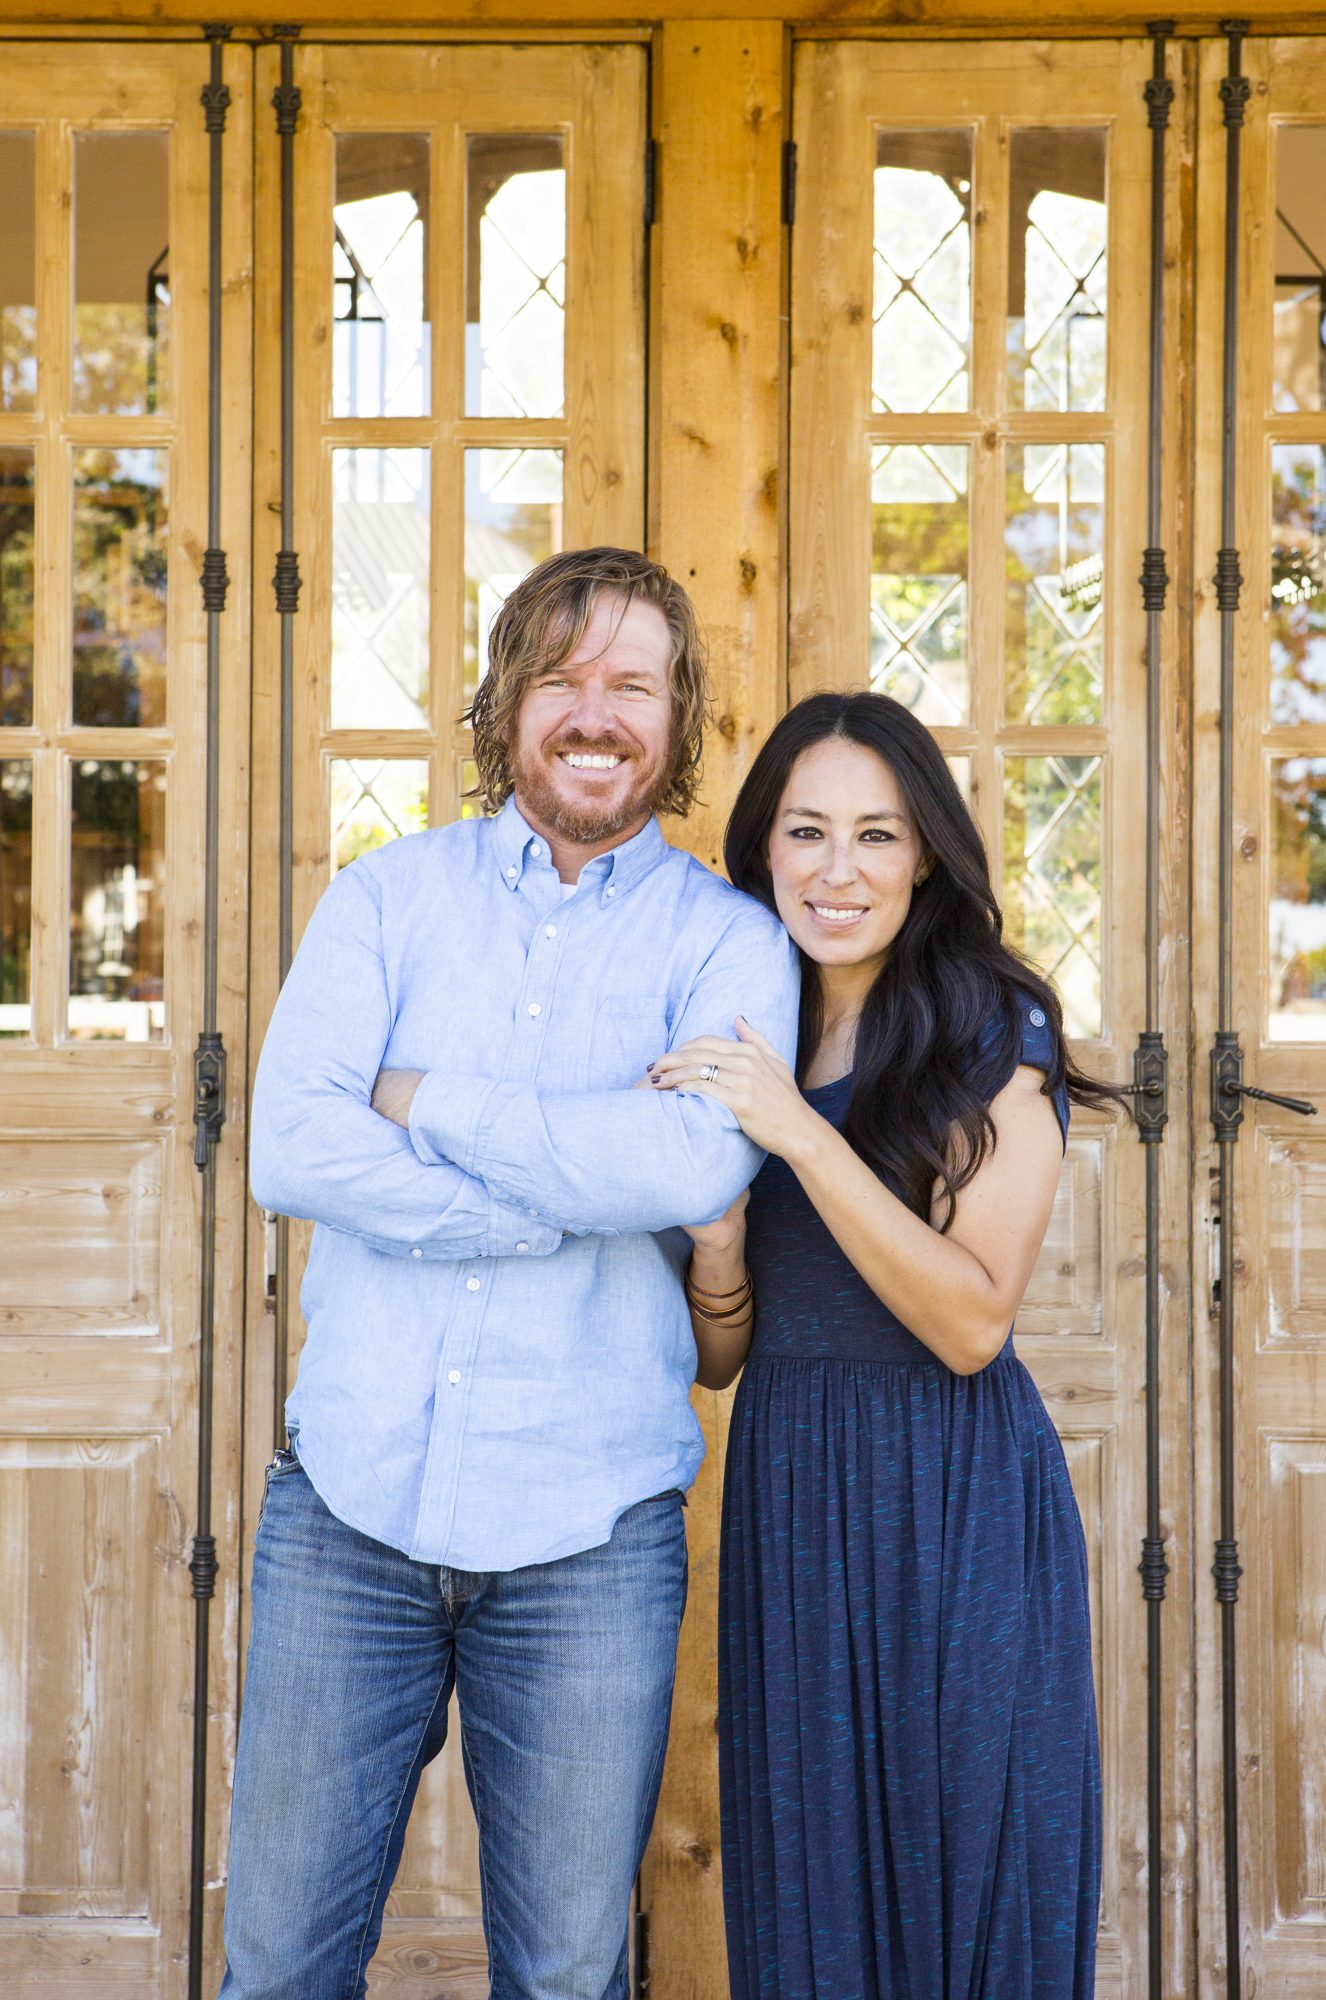 Chip and Joanna Gaines Welcome Son: 'The Gaines Crew Is Now 1 Stronger!' hfxupsp05_reveal_105